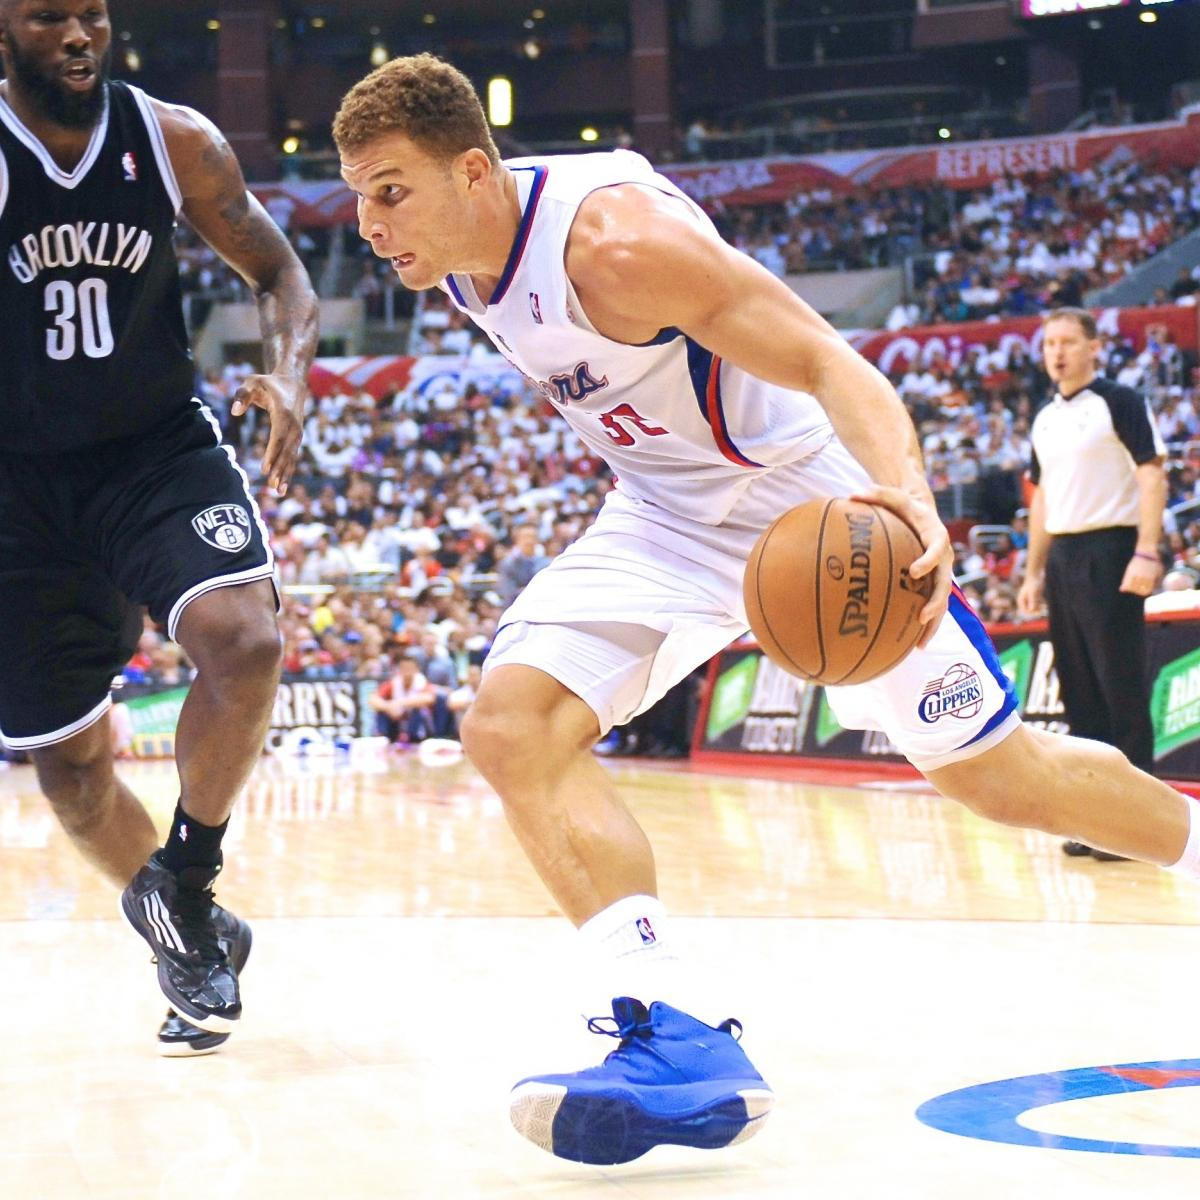 Warriors Vs Nets Full Game Highlights: Definitive Guide To Brooklyn Nets Vs. LA Clippers And